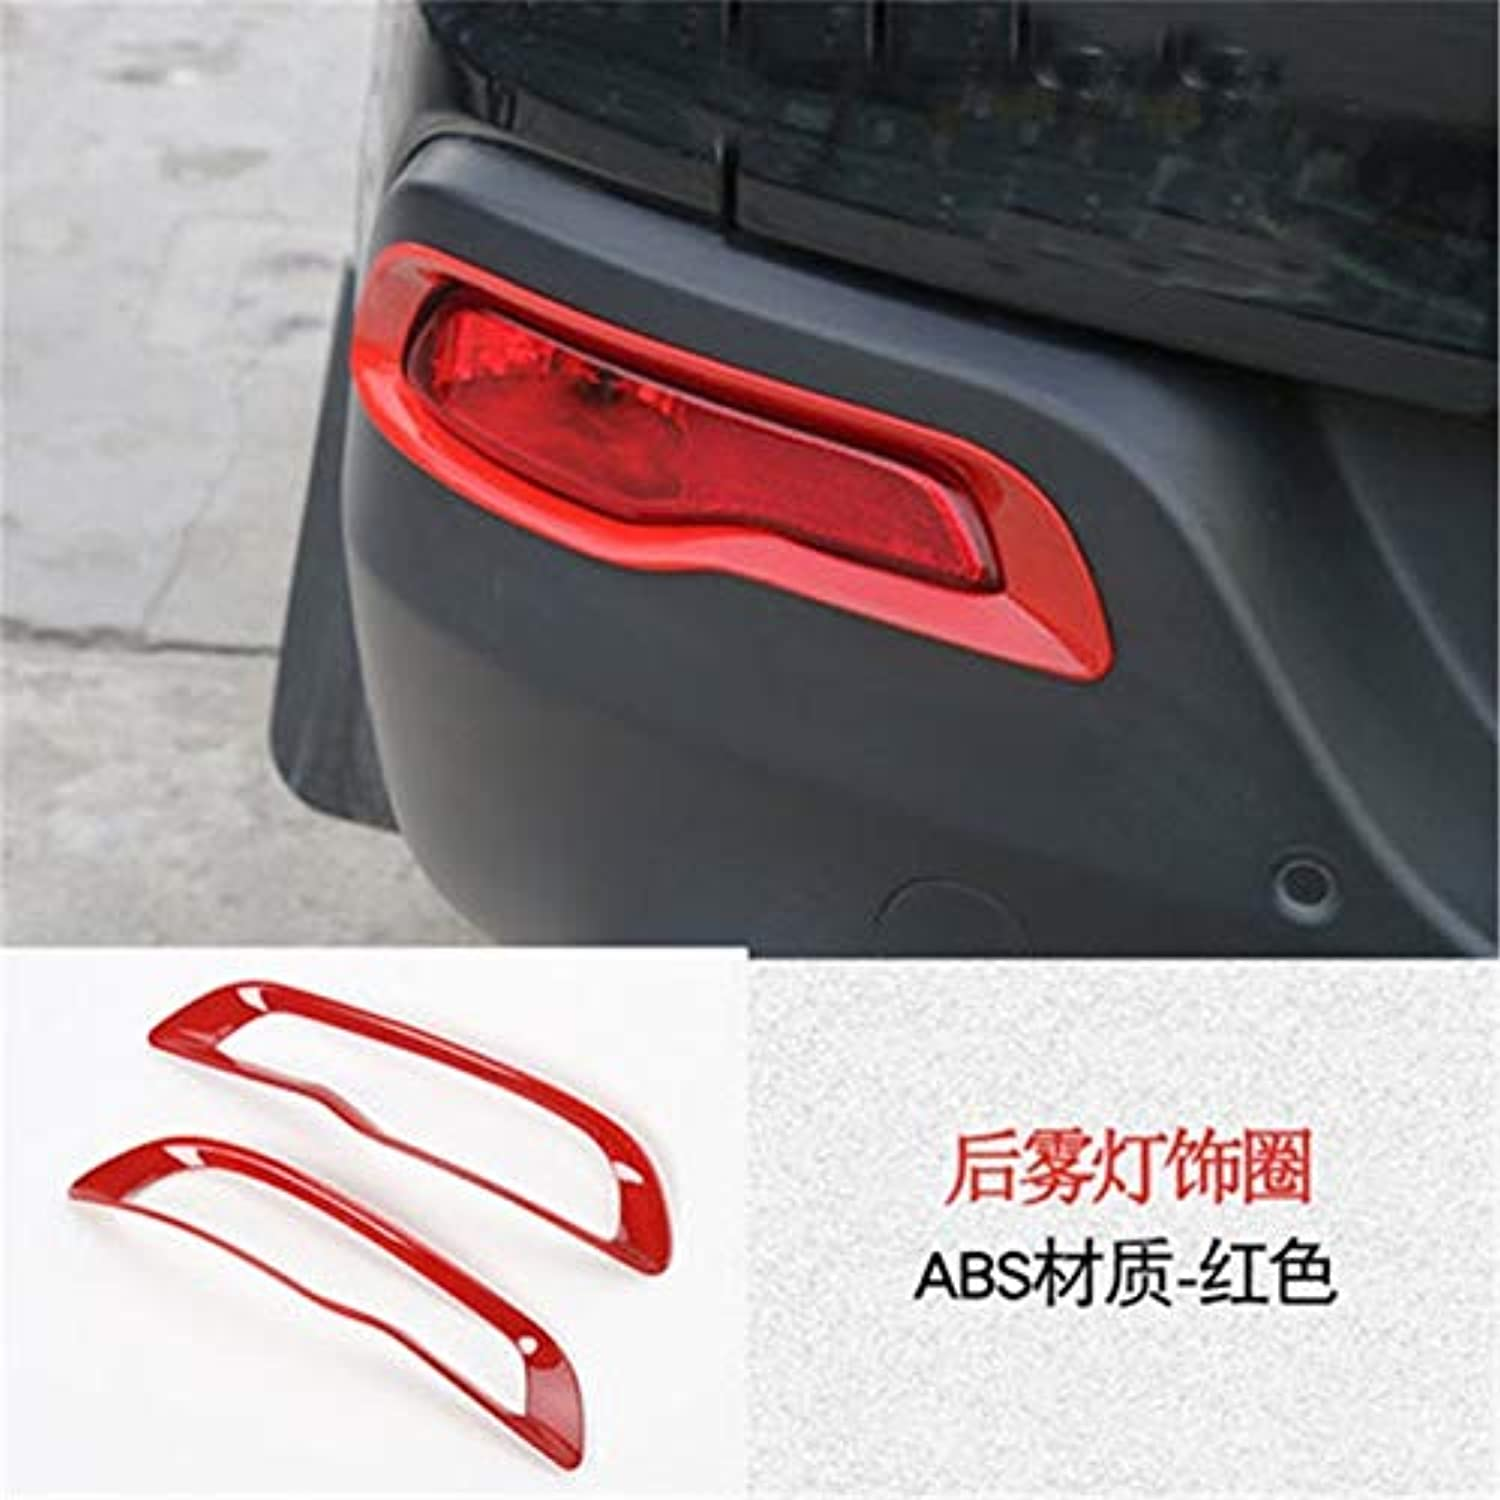 2pcs lot ABS Rear Fog Lamps Decoration Cover for 20142016 Jeep Cherokee  (color Name  White)